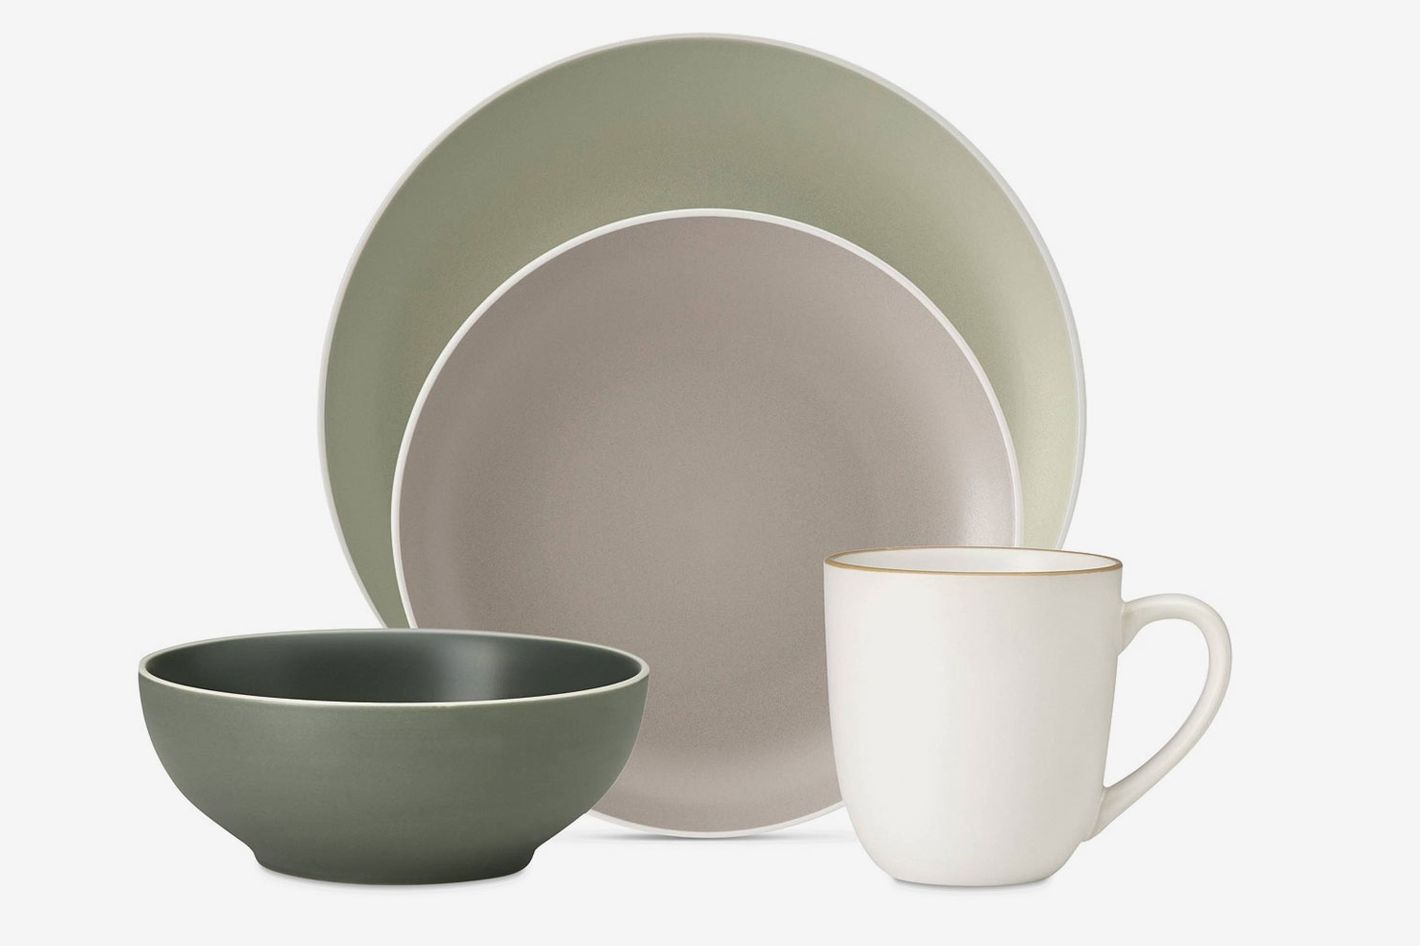 Pieces of ceramic dinnerware from Dansk — The Strategist's Deal of the Day is this dinnerware set.